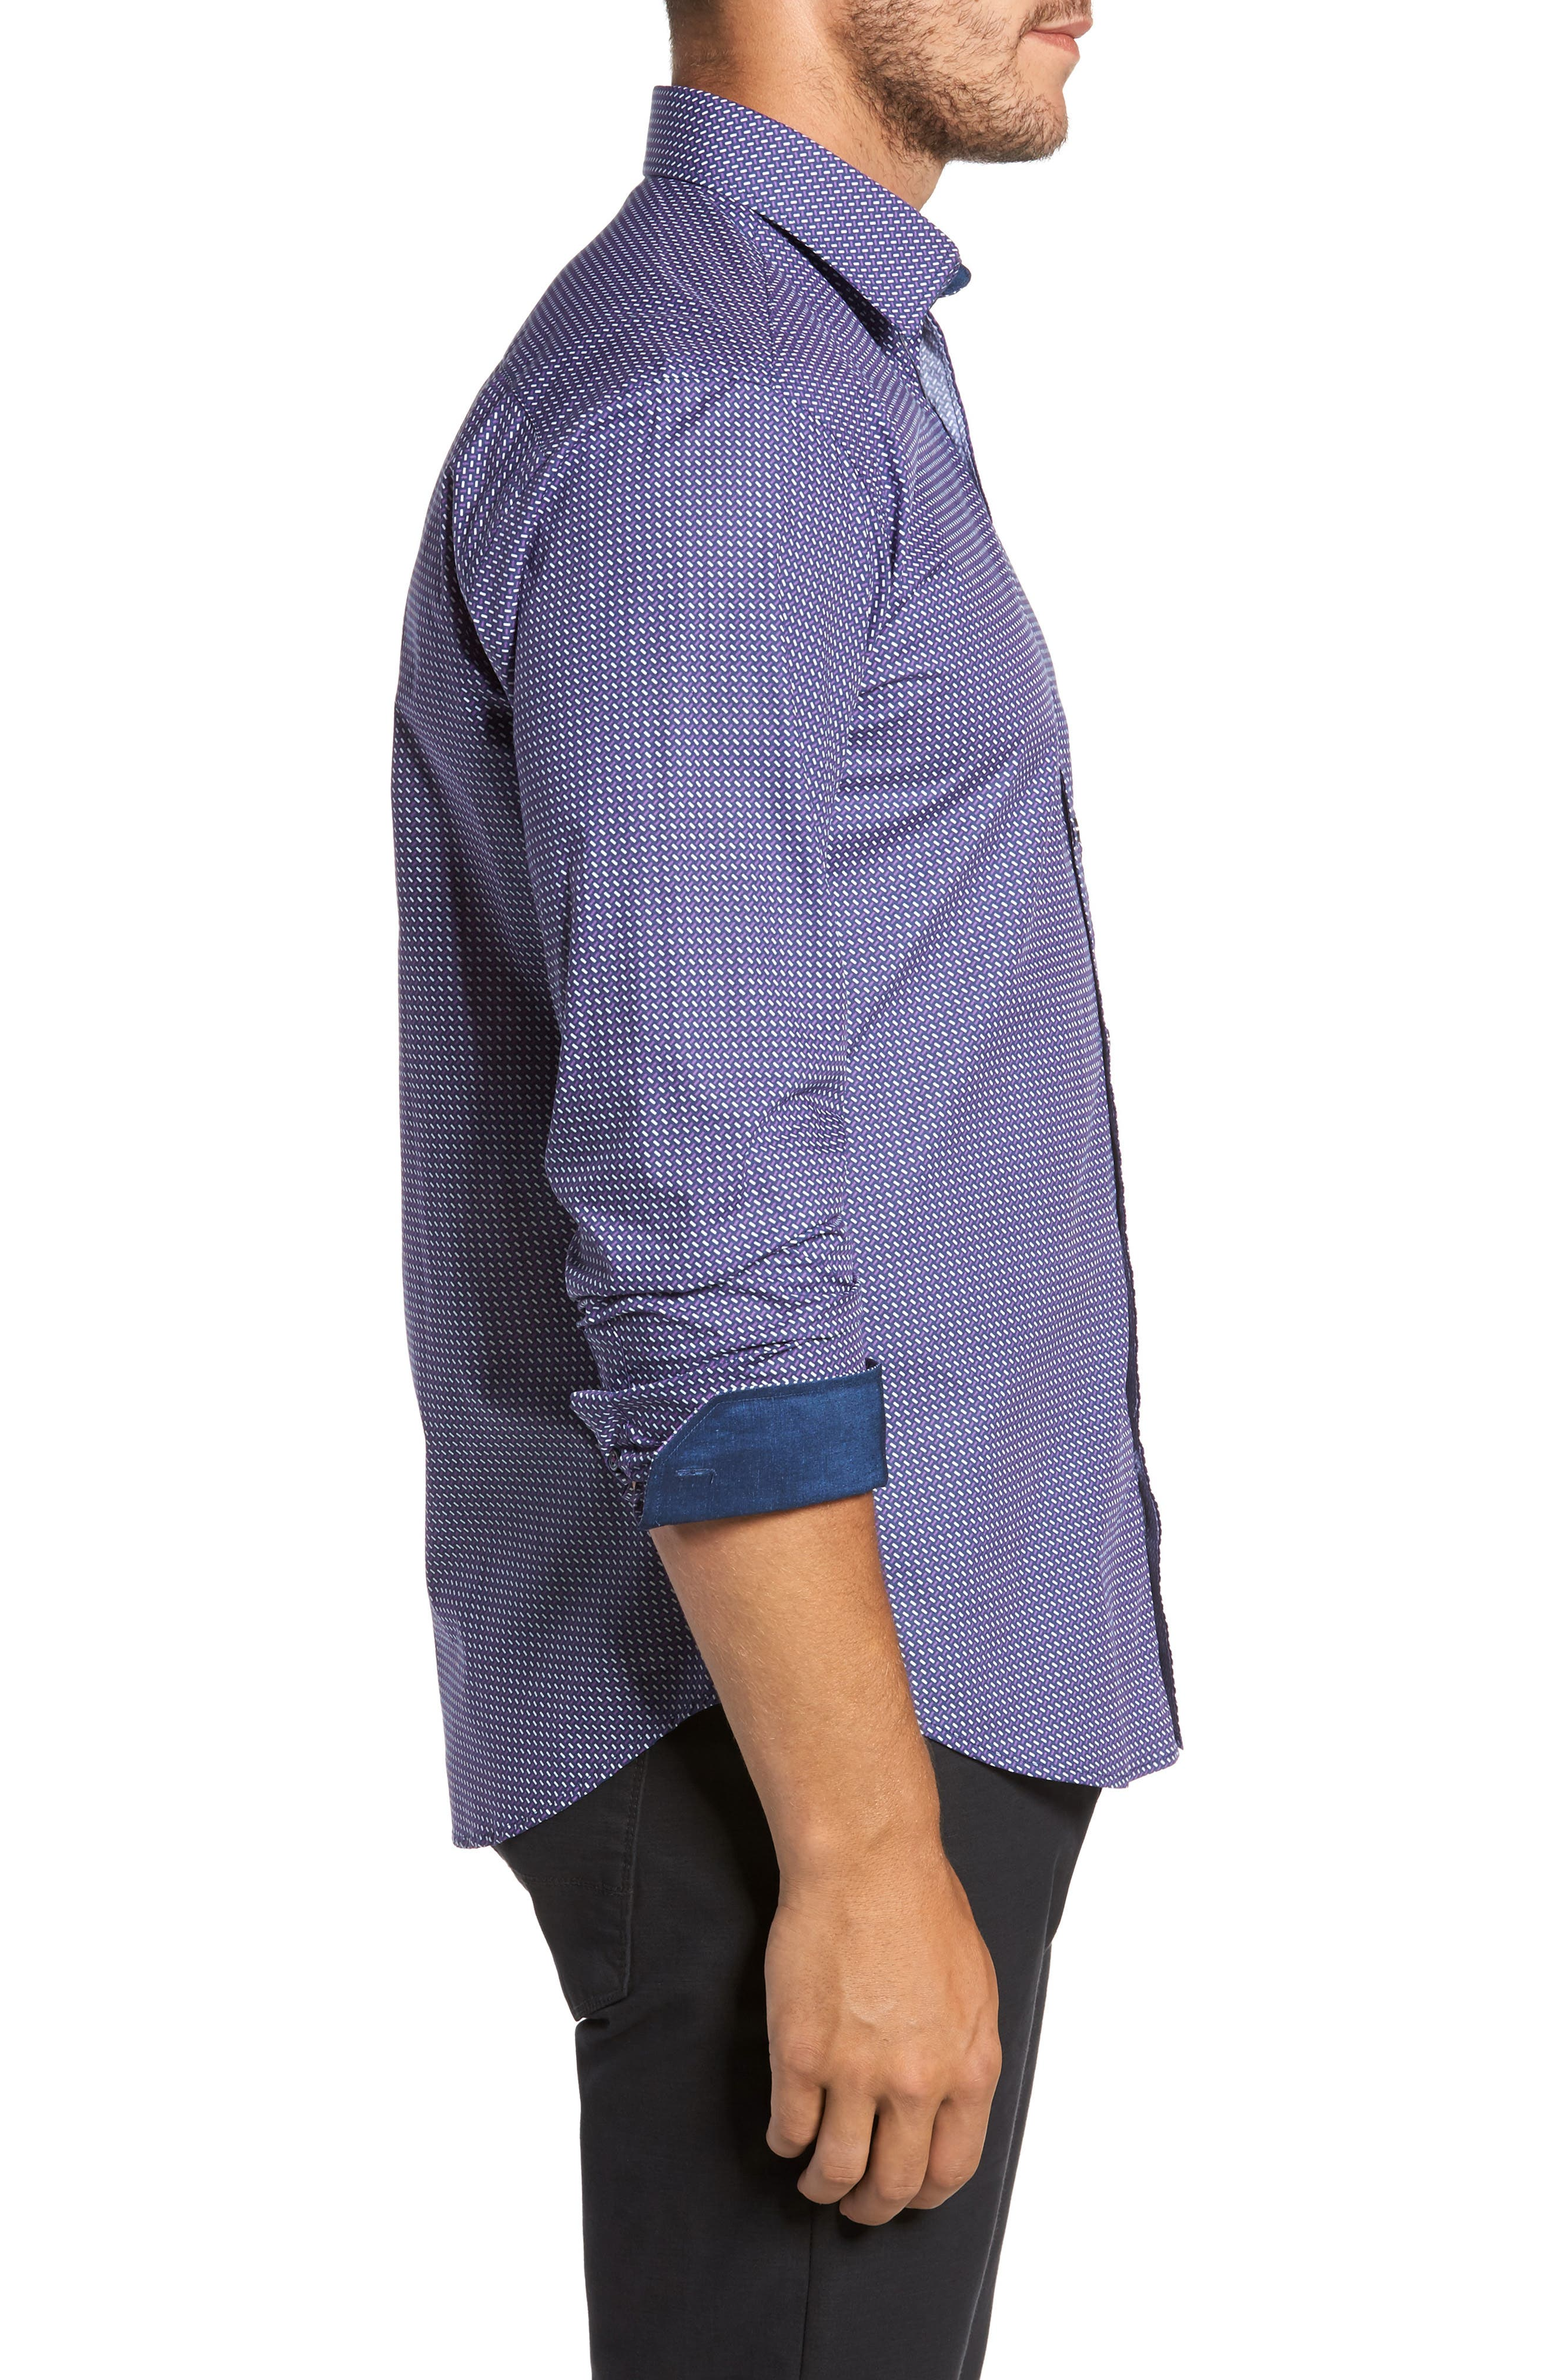 Alternate Image 3  - Bugatchi Trim Fit Weave Print Sport Shirt